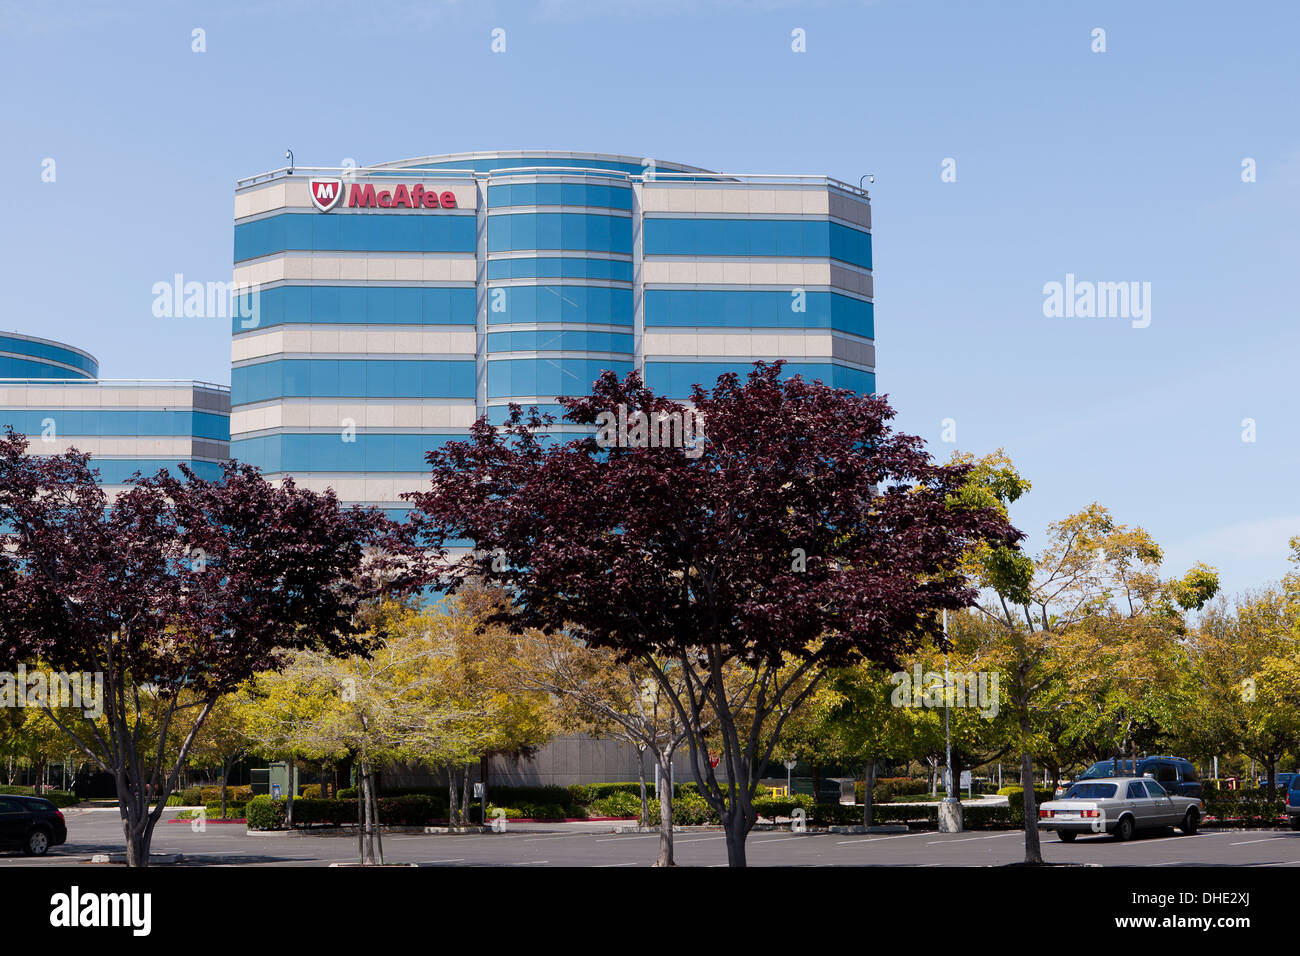 McAfee Inc headquarters building - Santa Clara, California USA - Stock Image